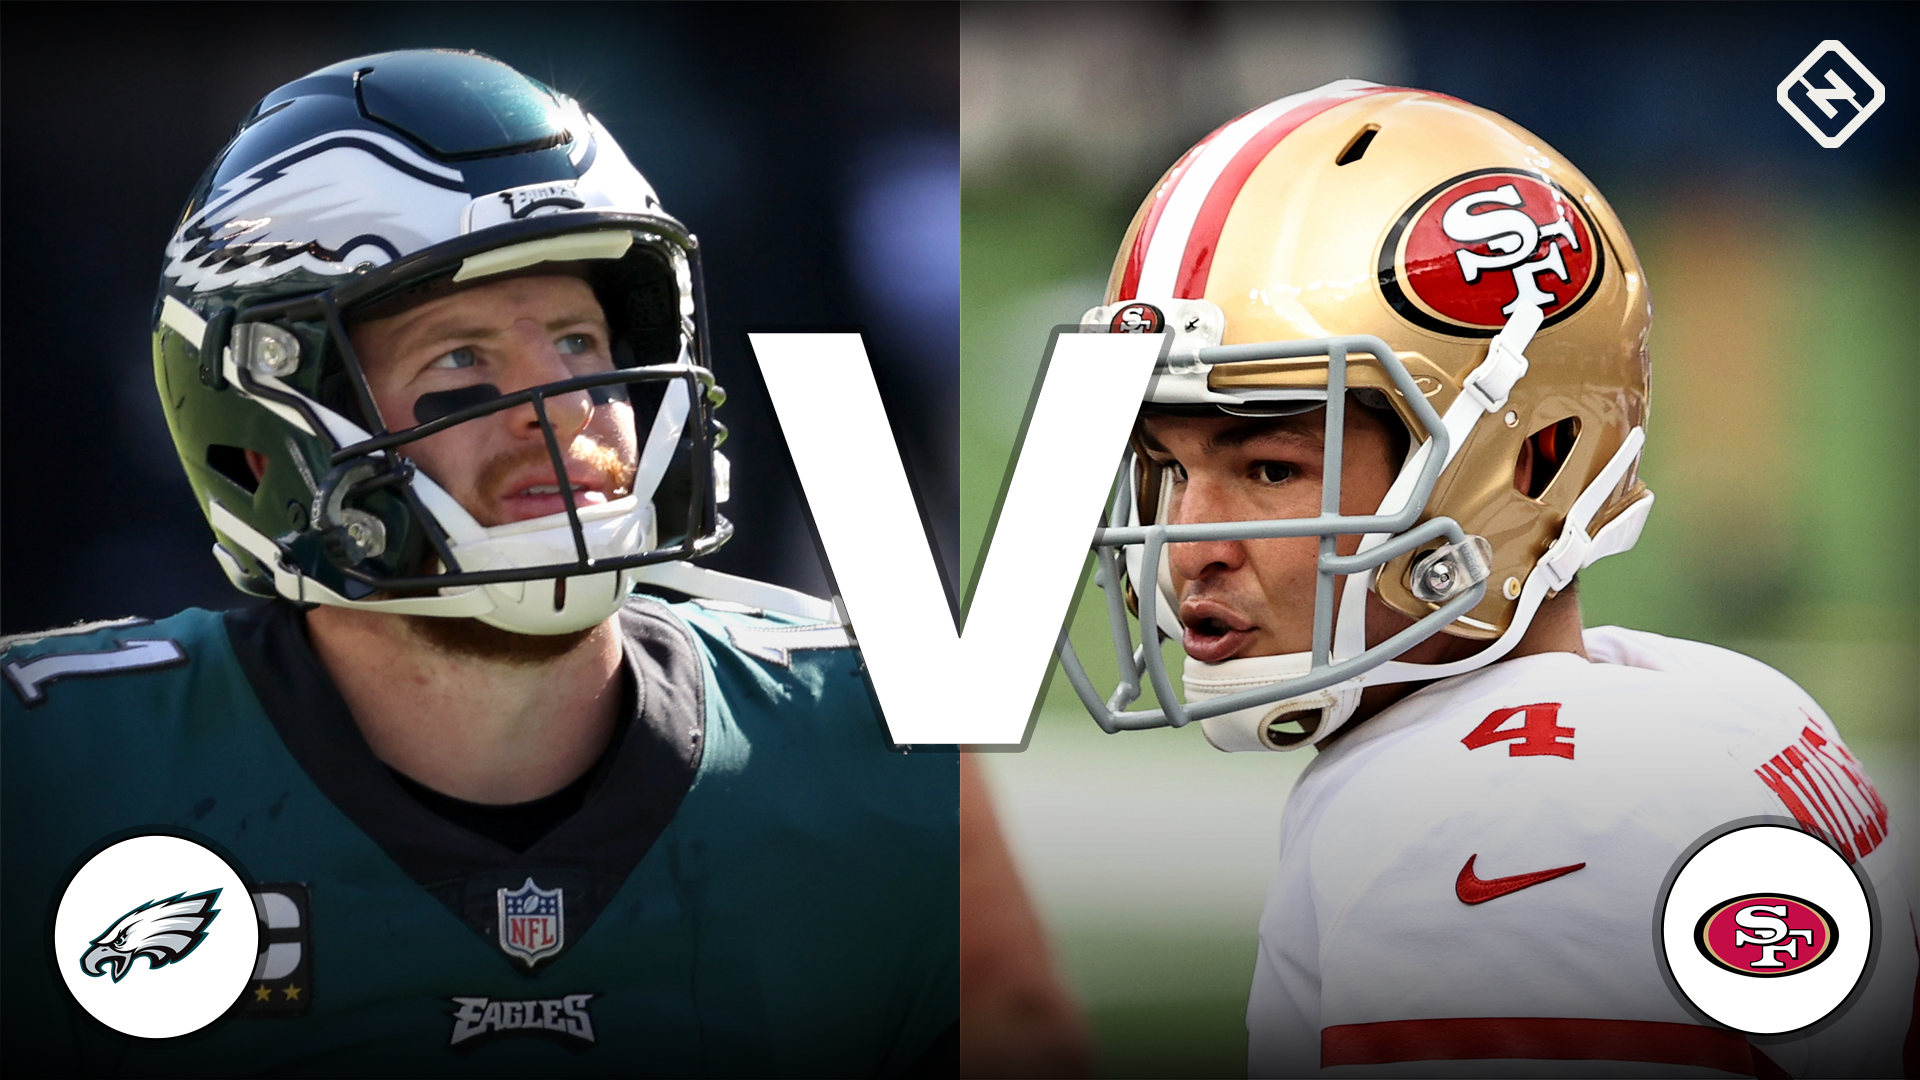 49ers vs. Eagles live score, updates, highlights from NFL's 'Sunday Night Football' game